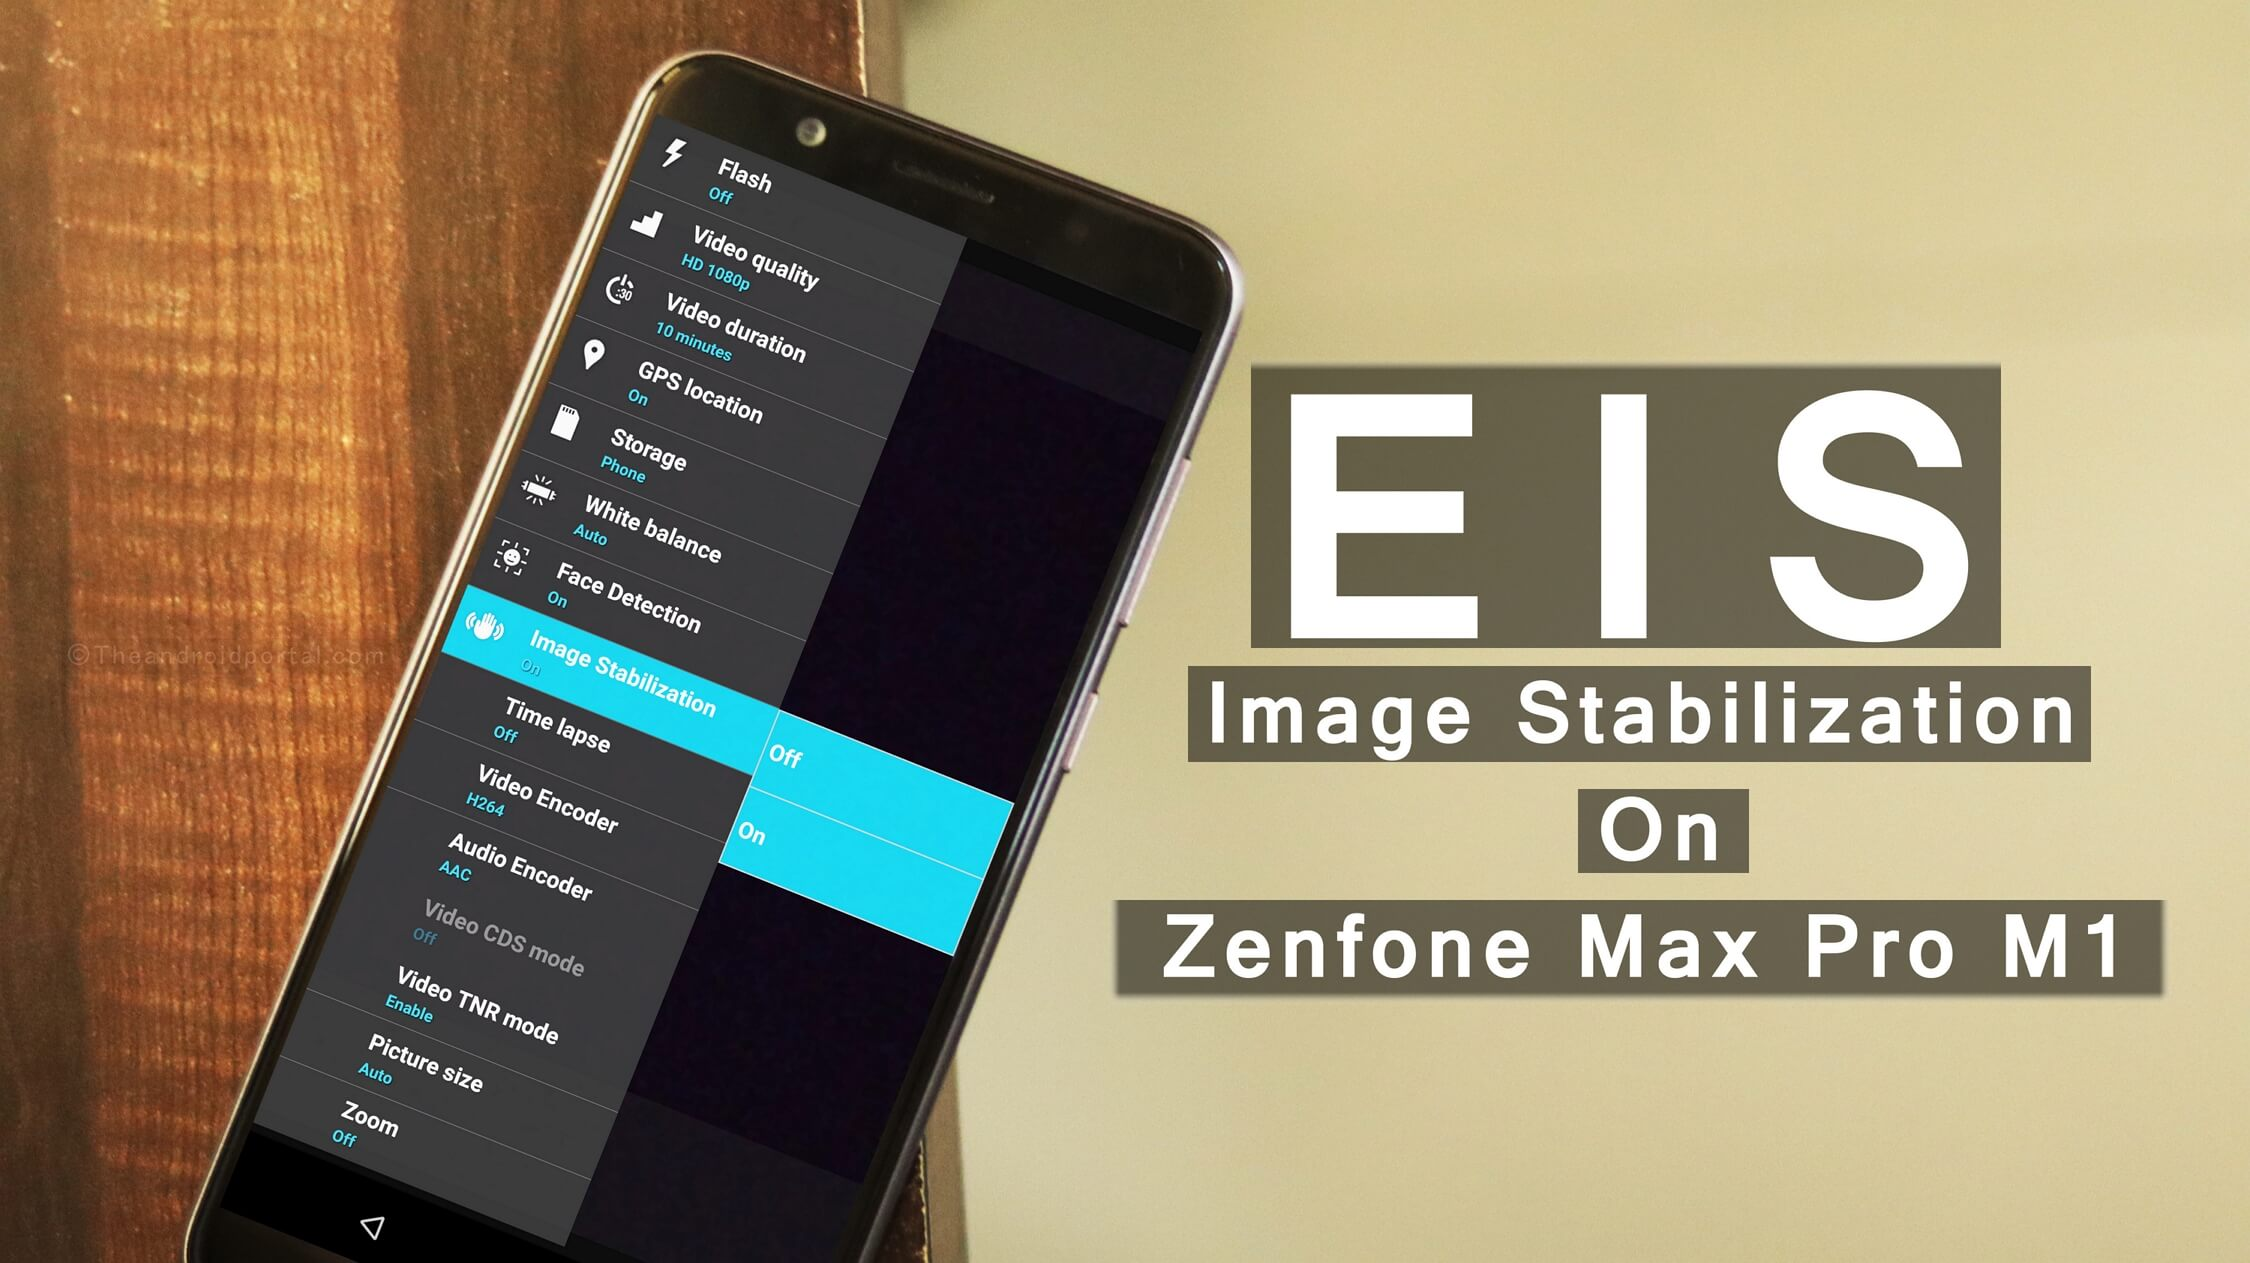 EIS on Zenfone Max Pro M1